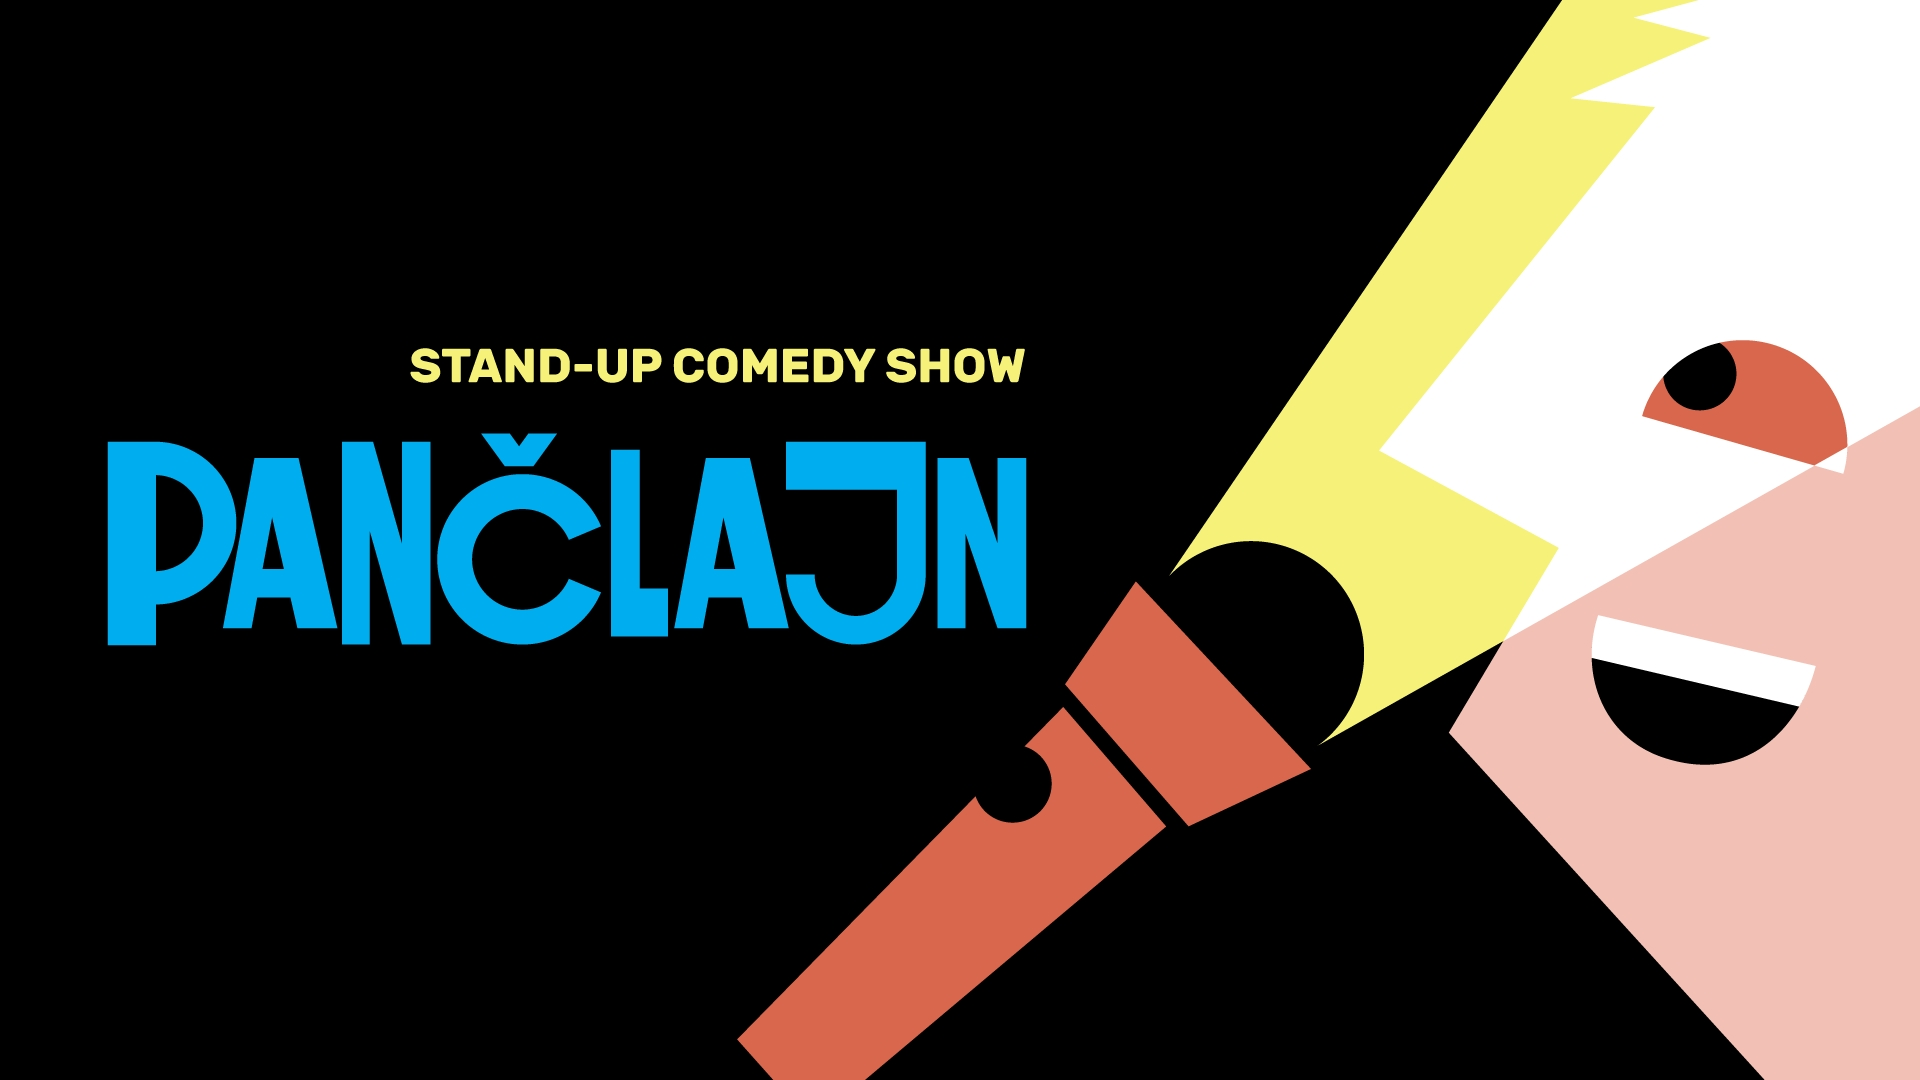 Sungard Exhibition Stand Up Comedy : Pančlajn stand up comedy show interticket sk